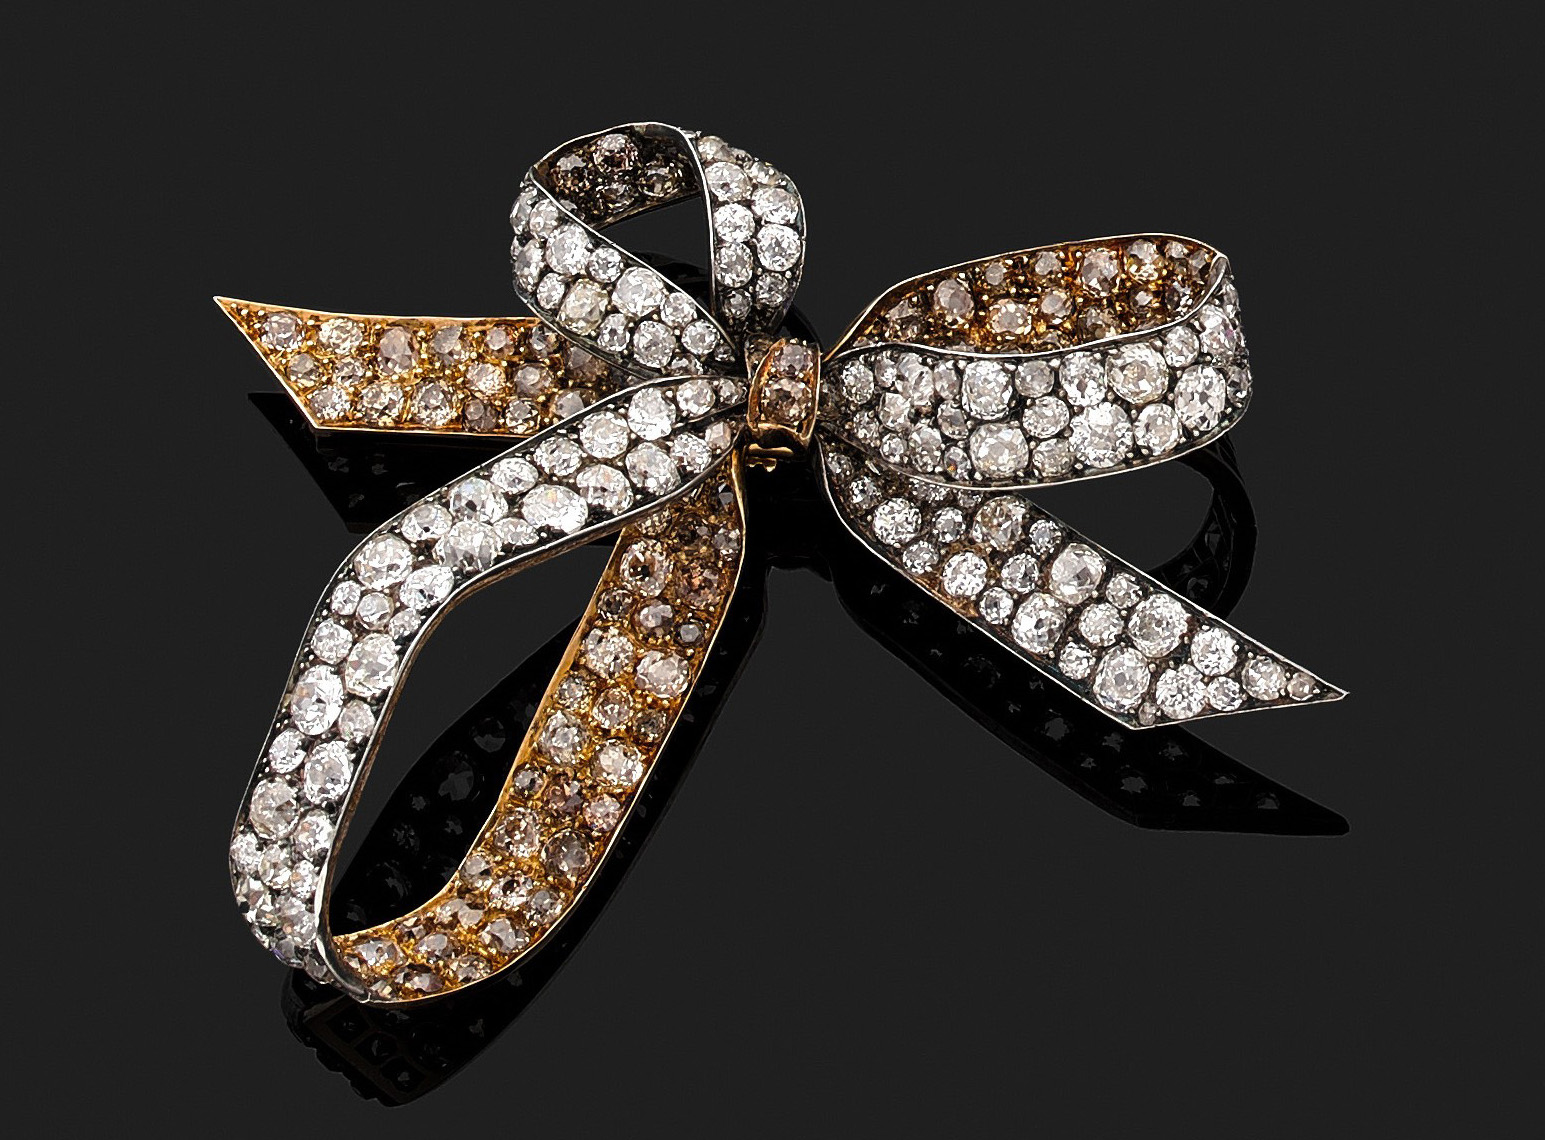 €93,750René Lalique, three-loop knot brooch in 18ct gold and silver, with pavé set old-cut diamonds and a removable pin, c. 1885.Paris, Dr